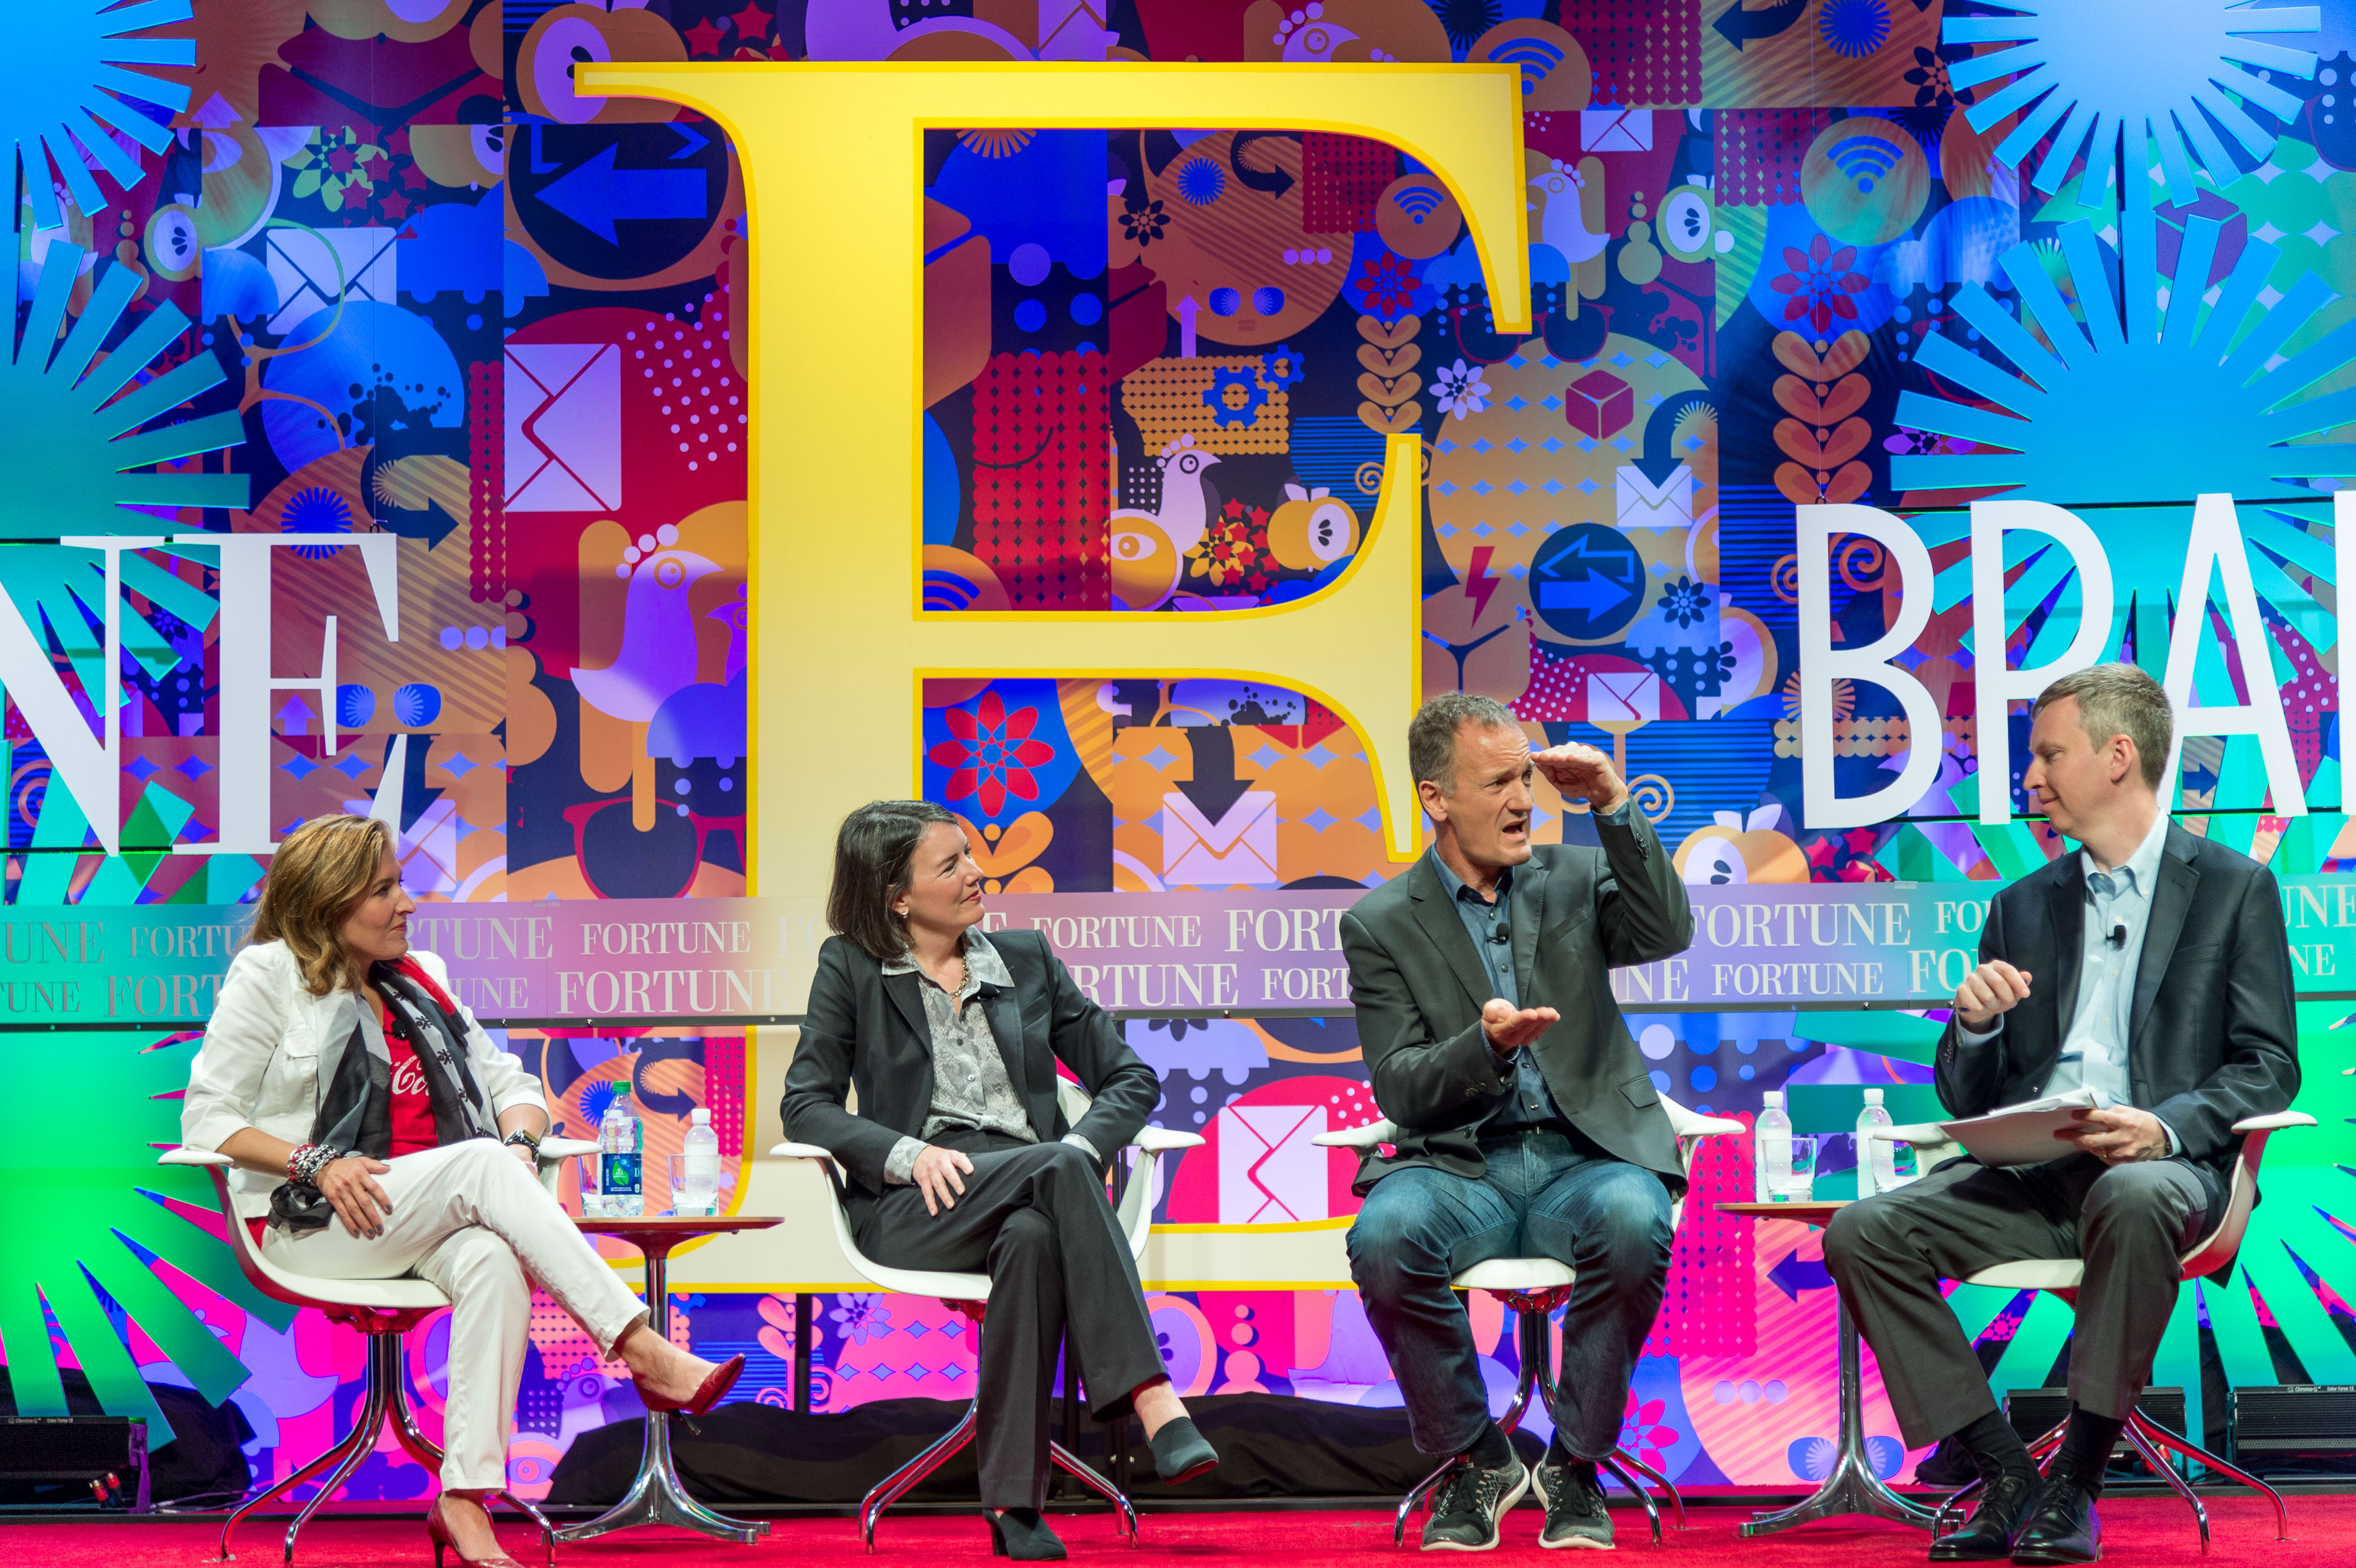 The chief sustainability officers of Coca-Cola, Walmart, and Ikea discuss the circular economy.